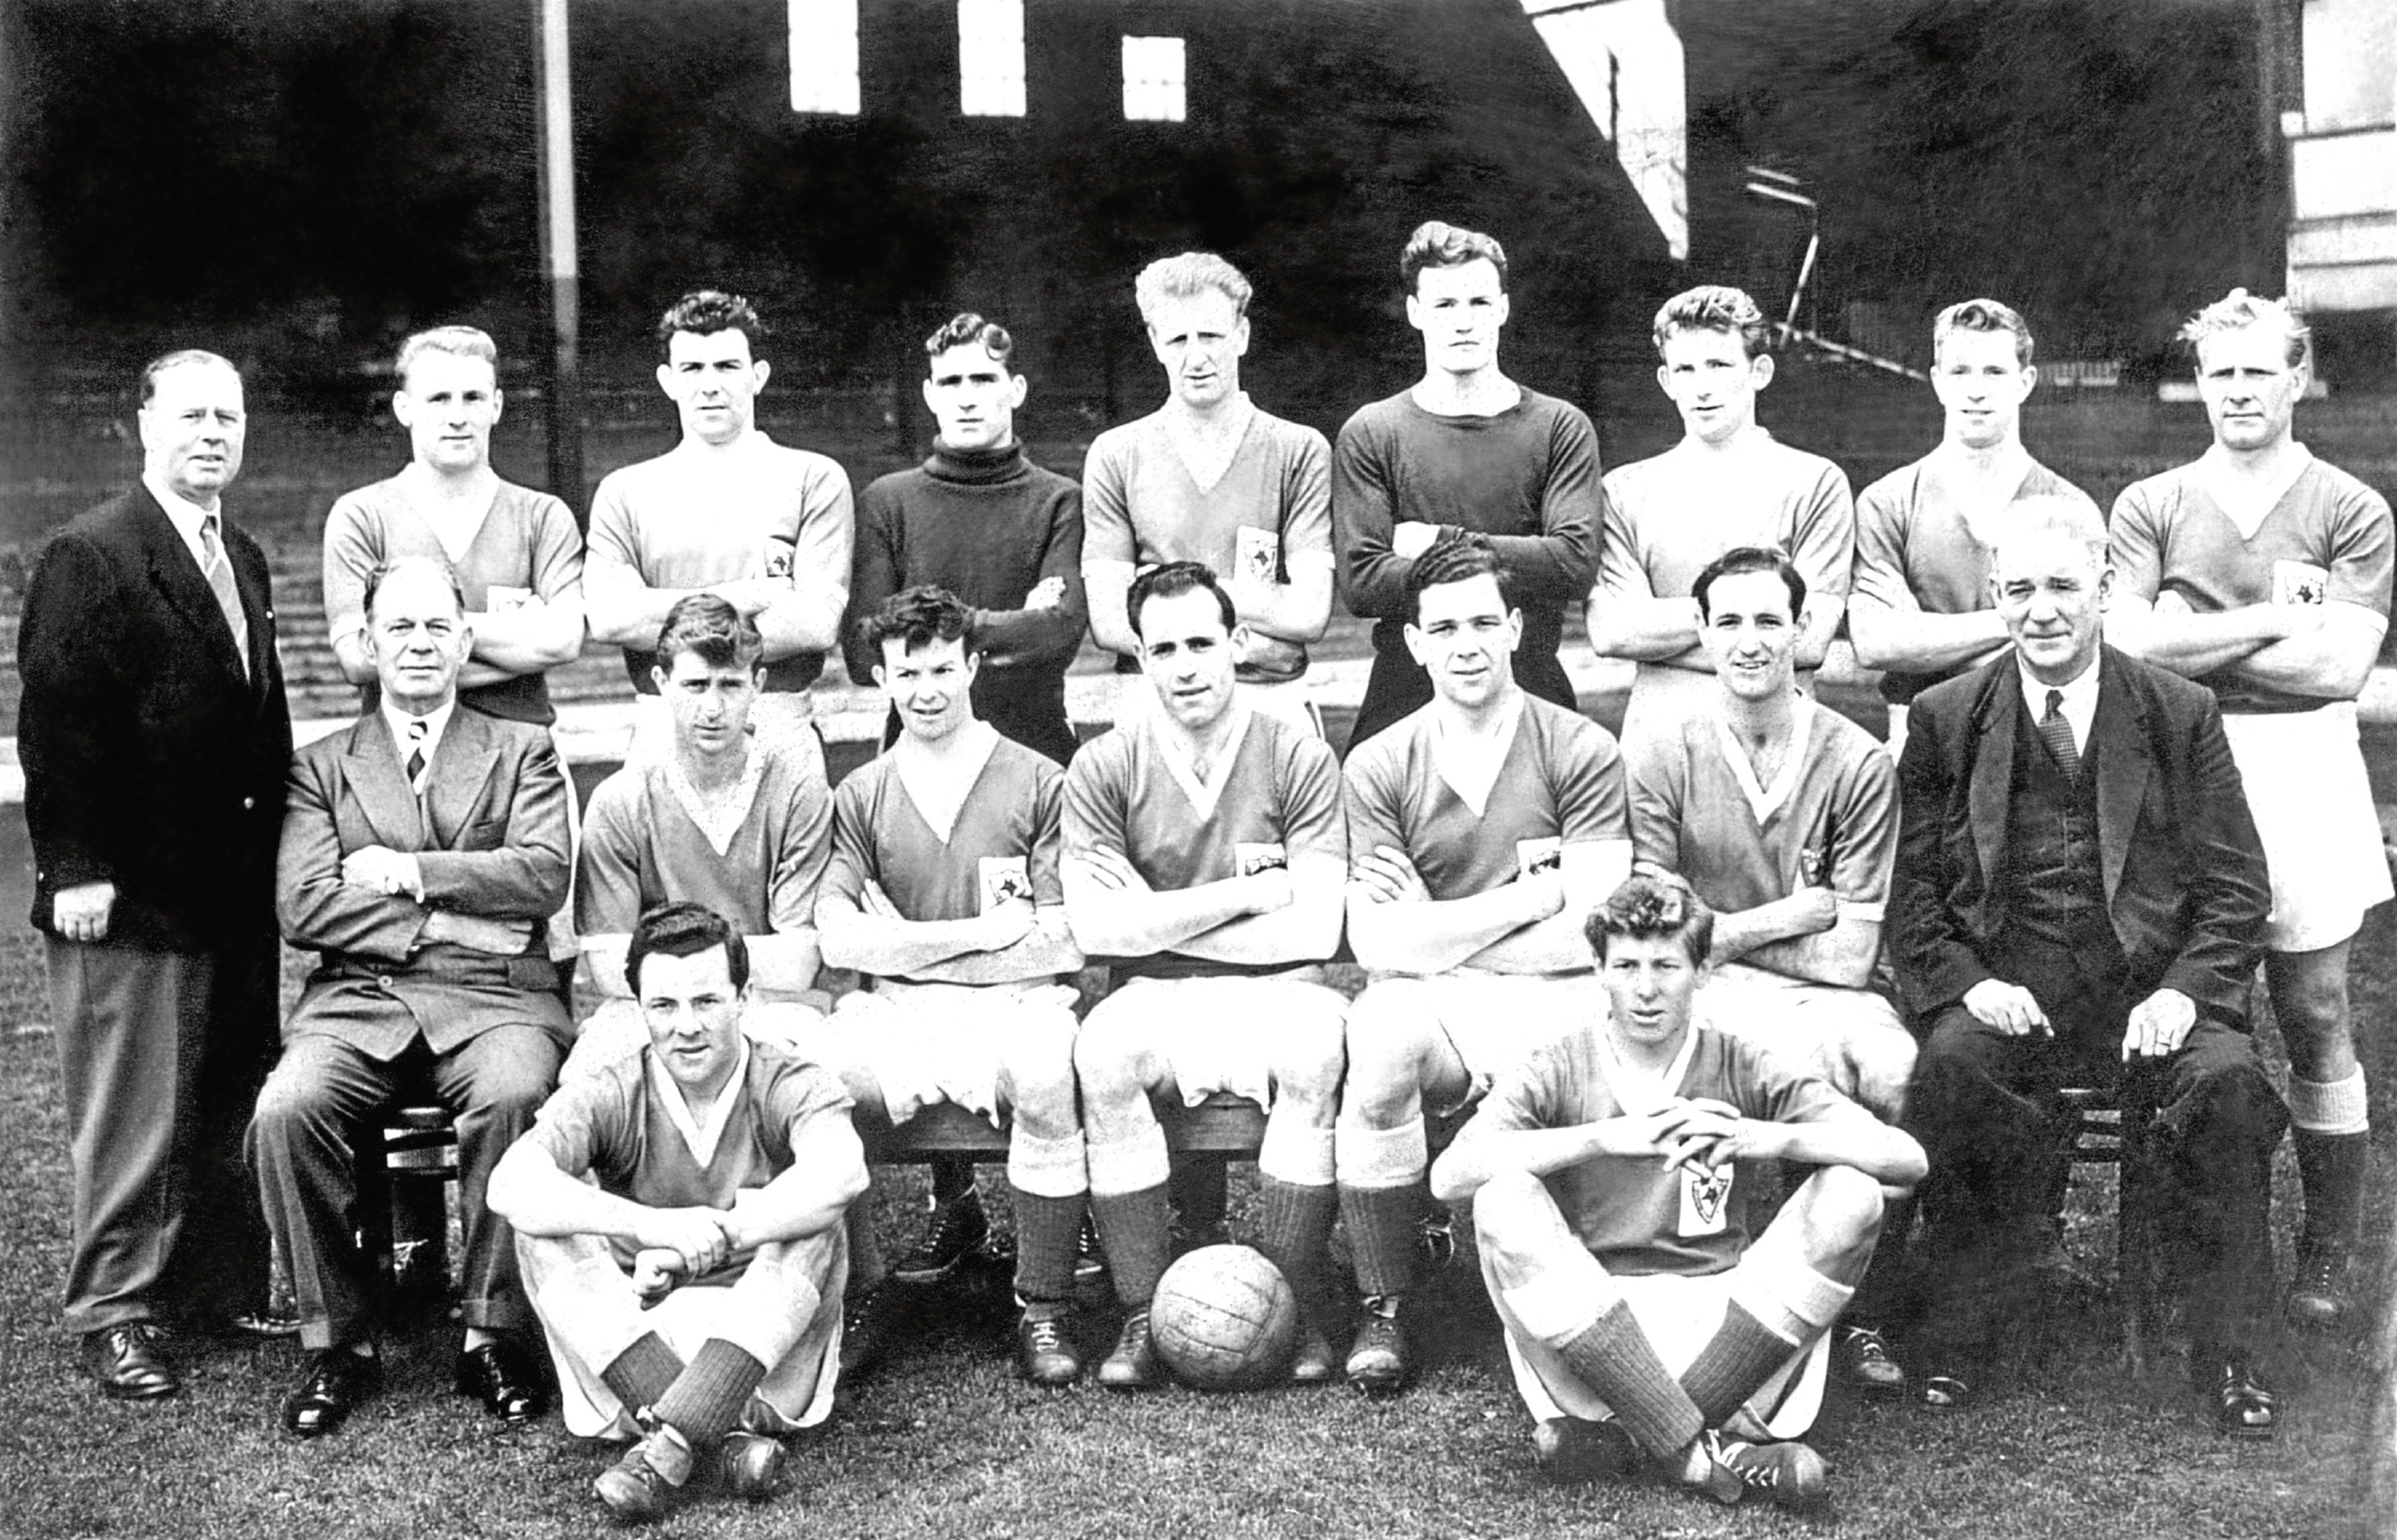 Leicester City, at about 1956-57. David Maclaren was the goalkeeper